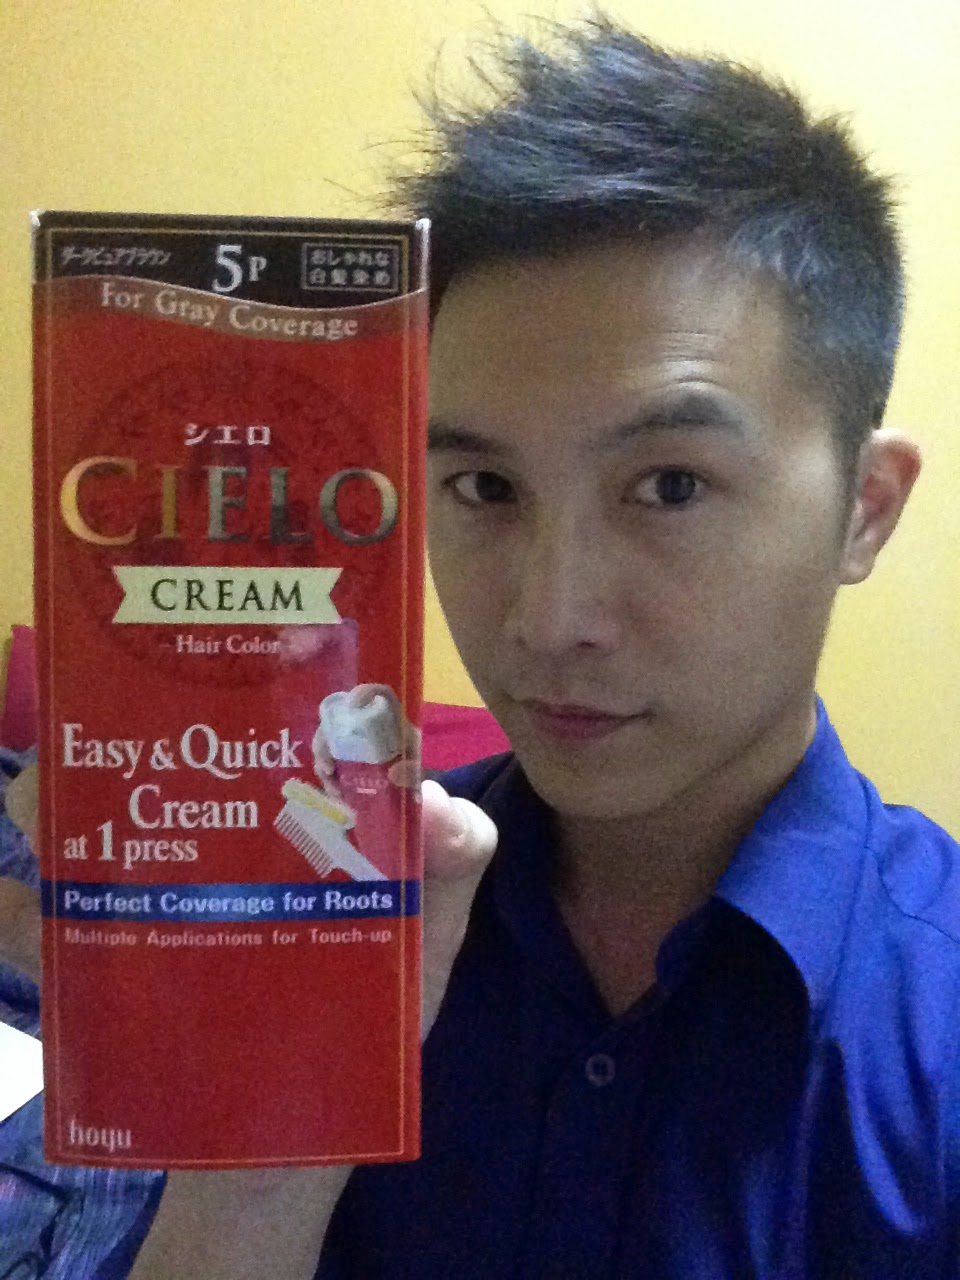 The minute man lifestyle fashion for the minute hair dyeing hair dyeing tips with cielo cream hair colour sponsored post solutioingenieria Gallery